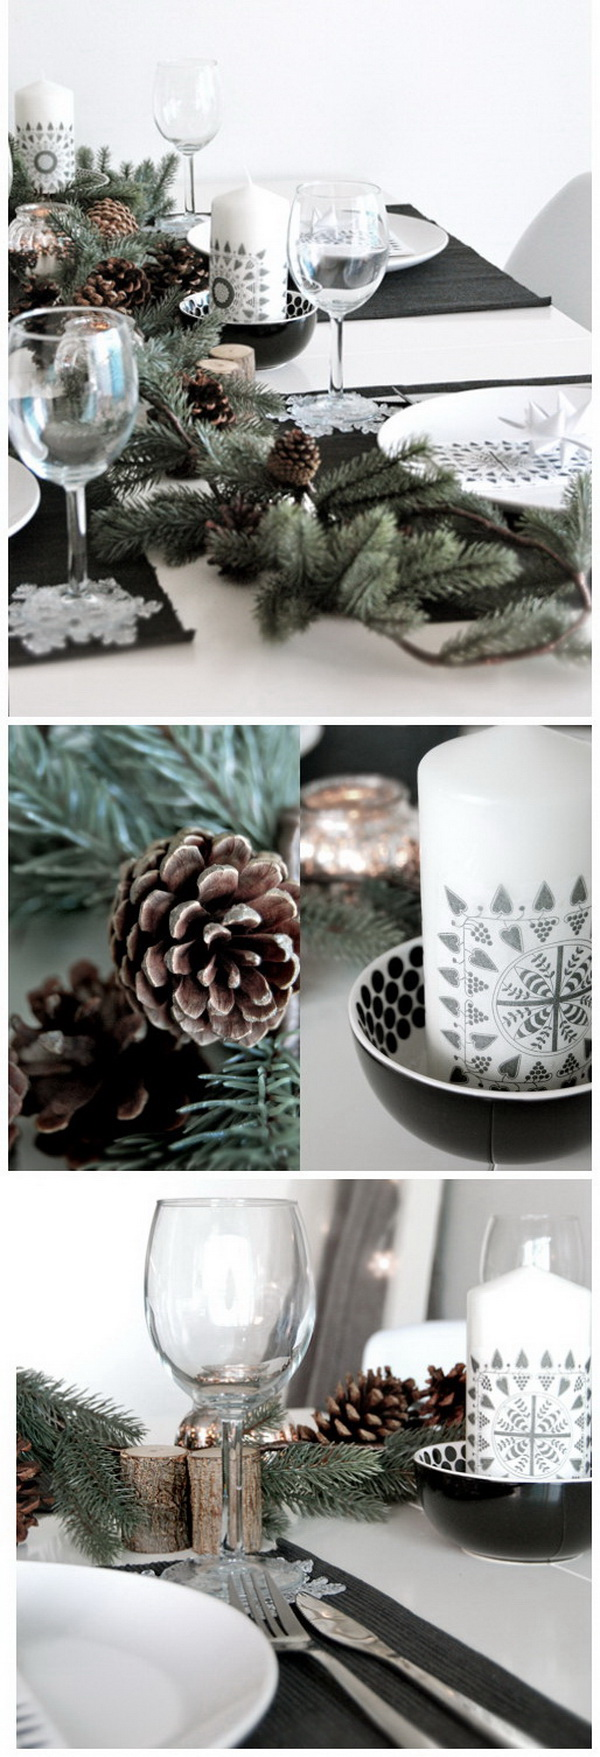 Pinecone Table Garland. Create a stunning and rustic table with a pinecone garland with those leftover evergreens and a few pinecones. It will surely add little extra rustic touch to your decor whether you set it on the dining room table or you want something special for the mantel.